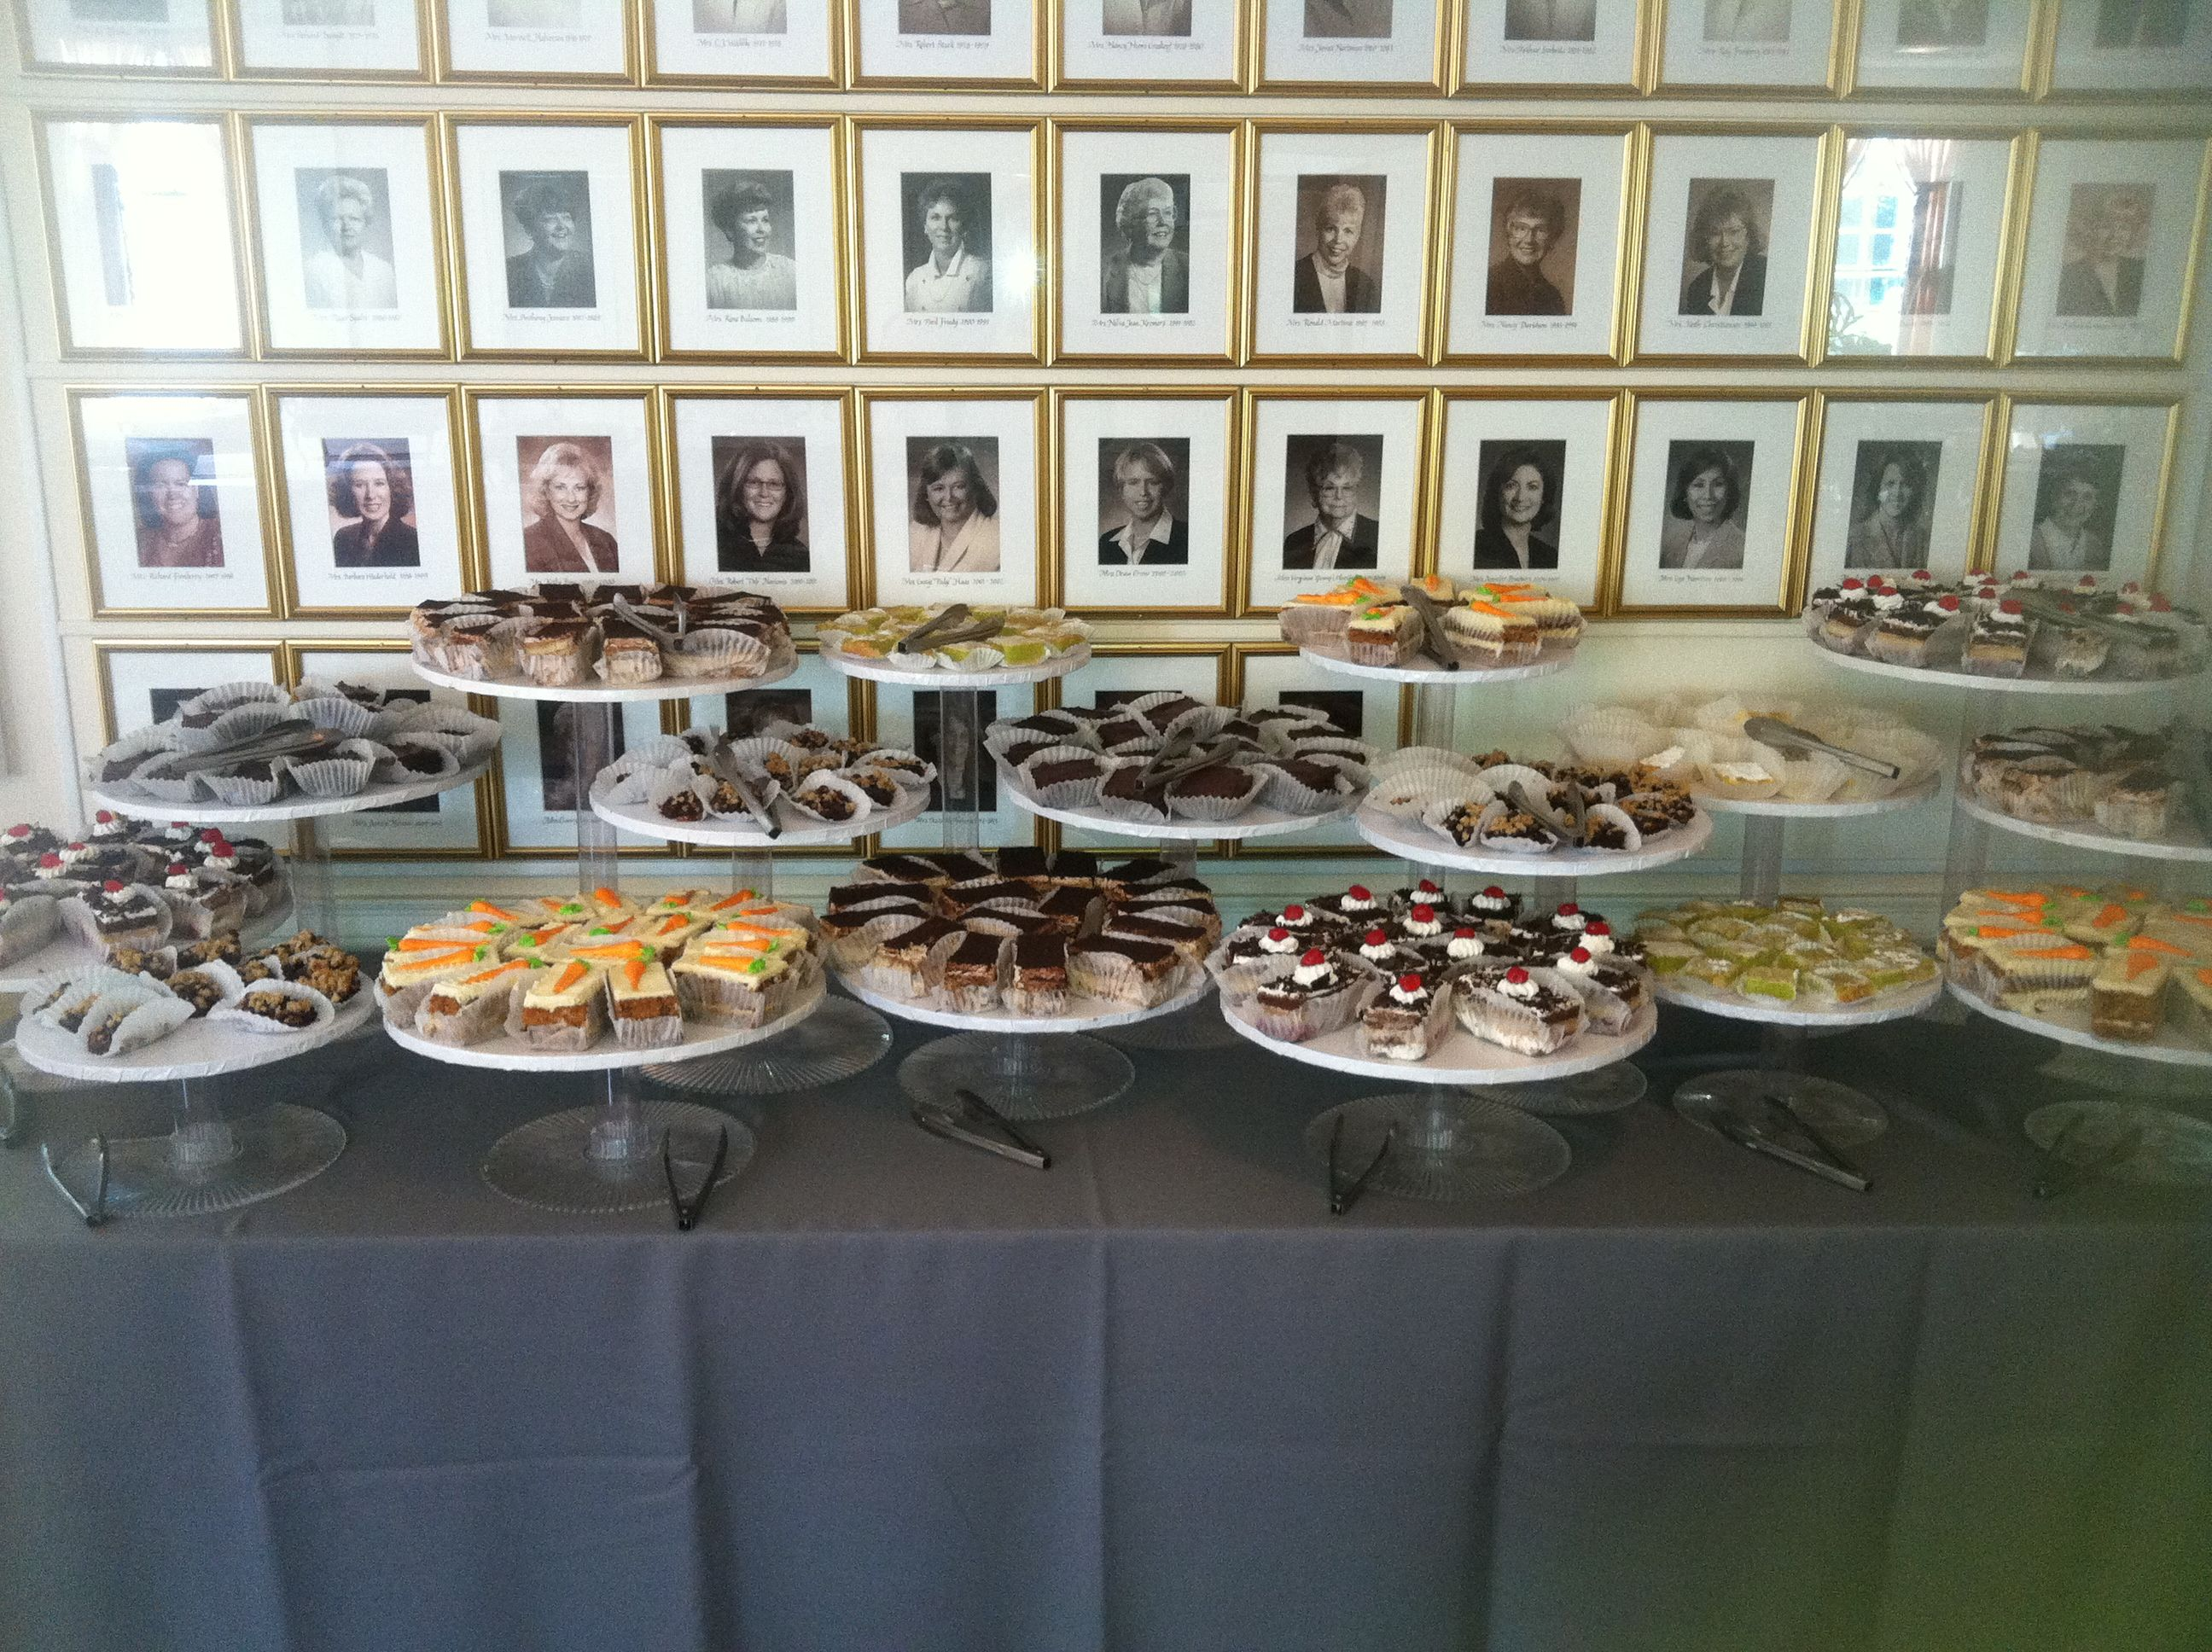 Sweets table containing a variety of desserts.